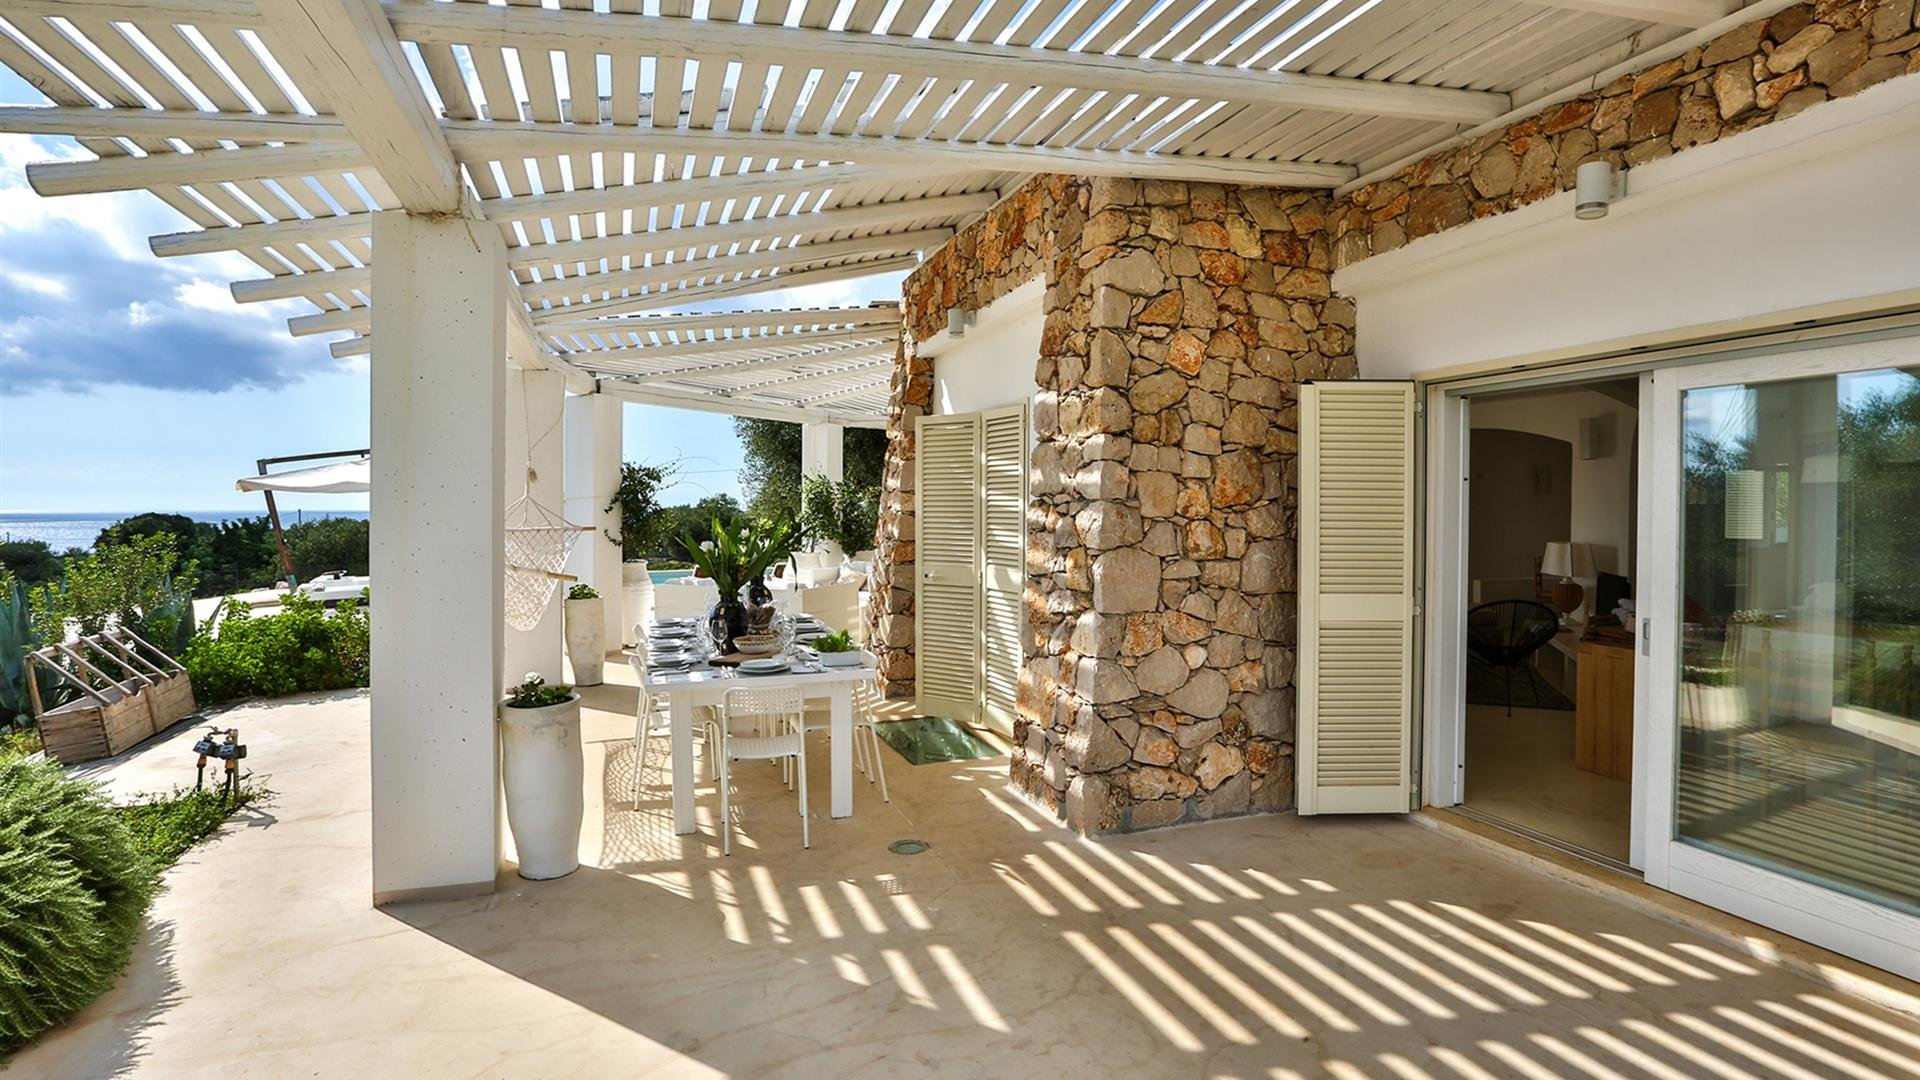 4 bedrooms villa with sea view and private garden